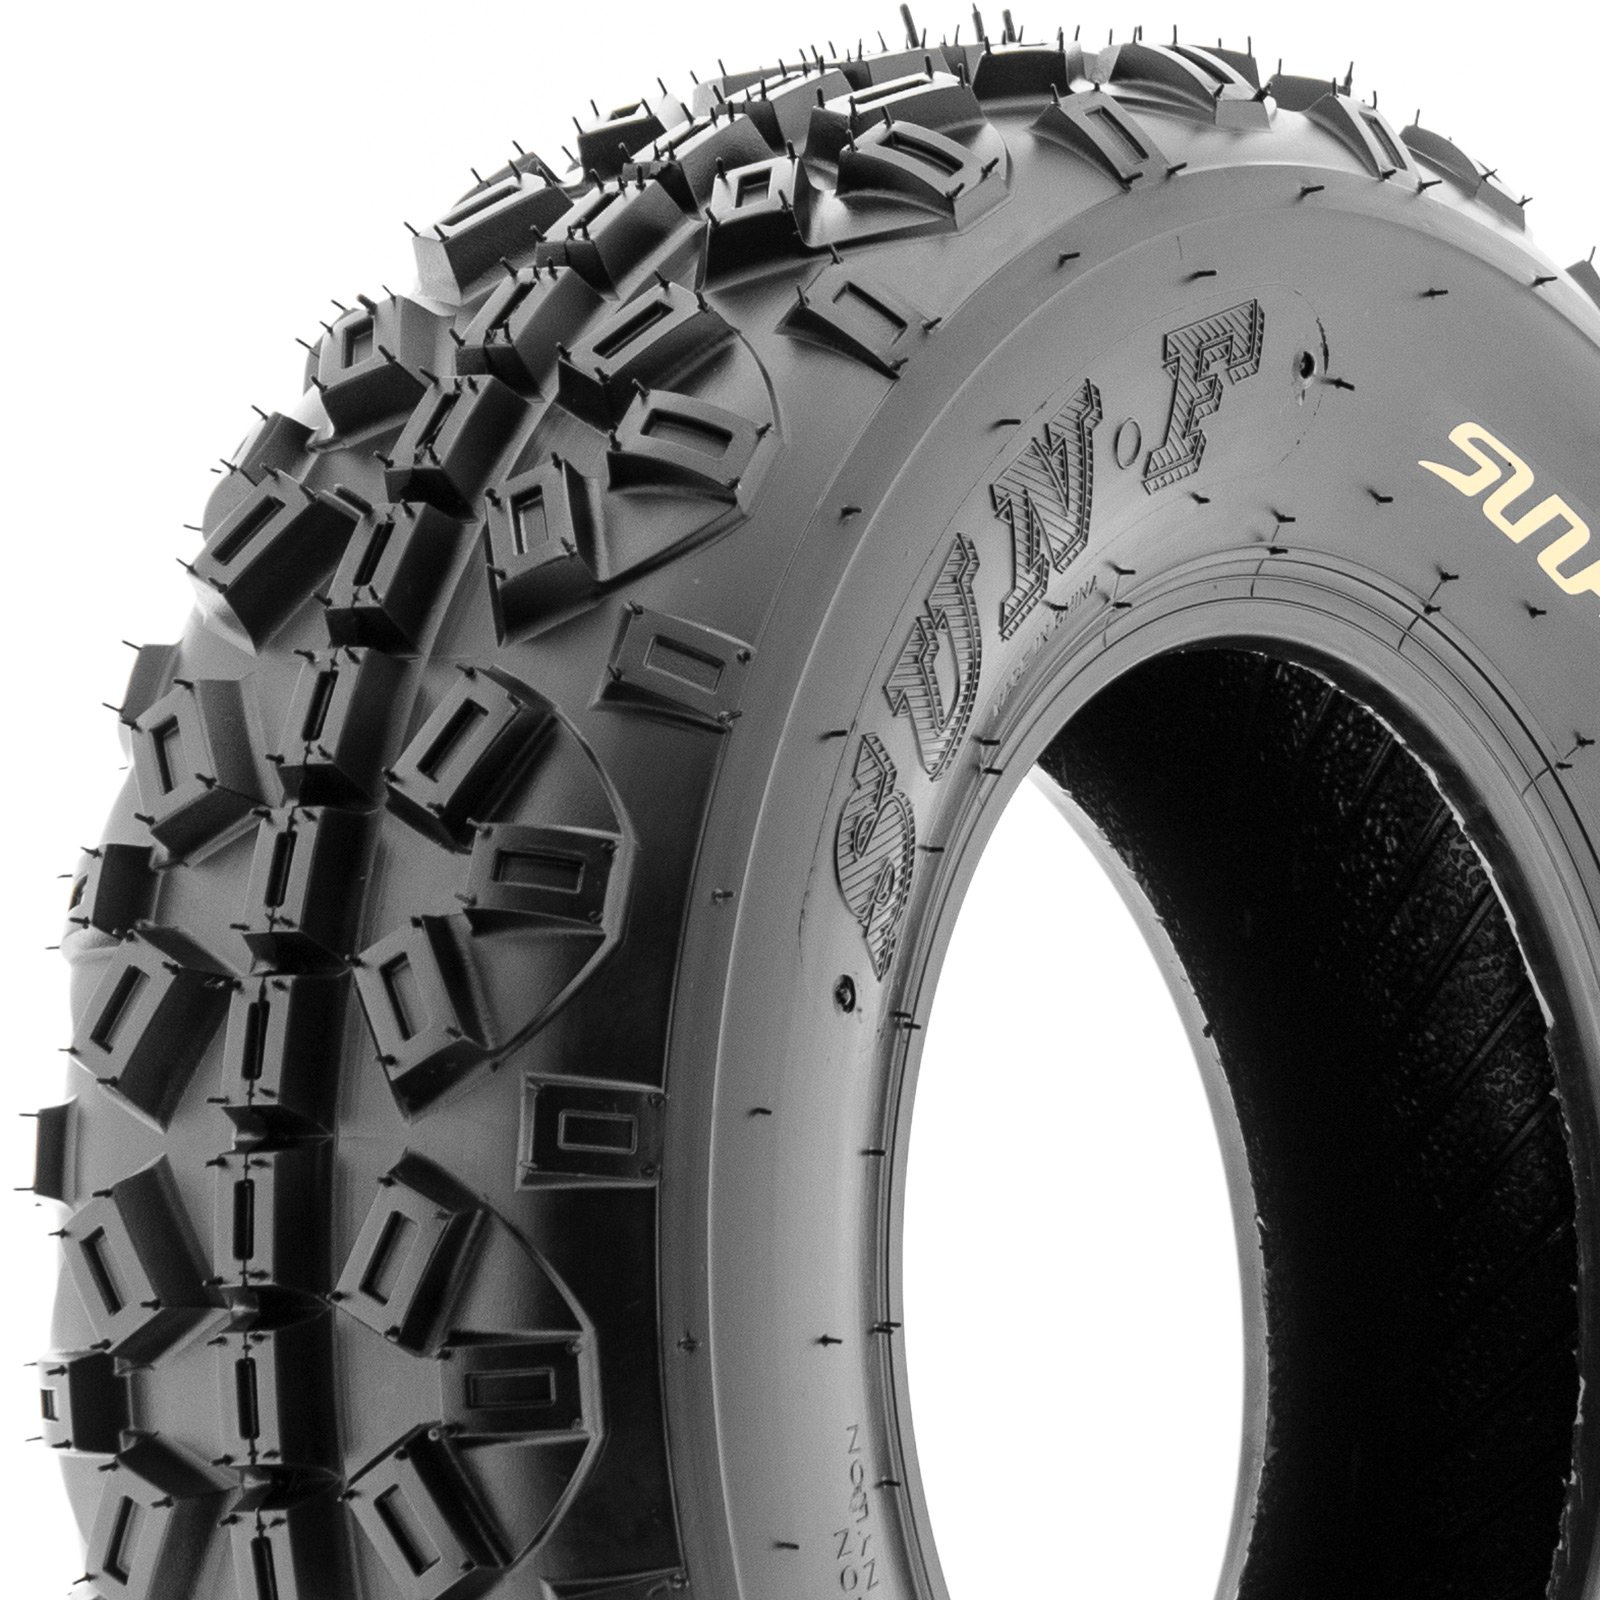 SunF Knobby XC MX ATV Tires 21x6-10 & 20x11-9 6 PR A035 (Full set of 4, Front & Rear) by SunF (Image #7)